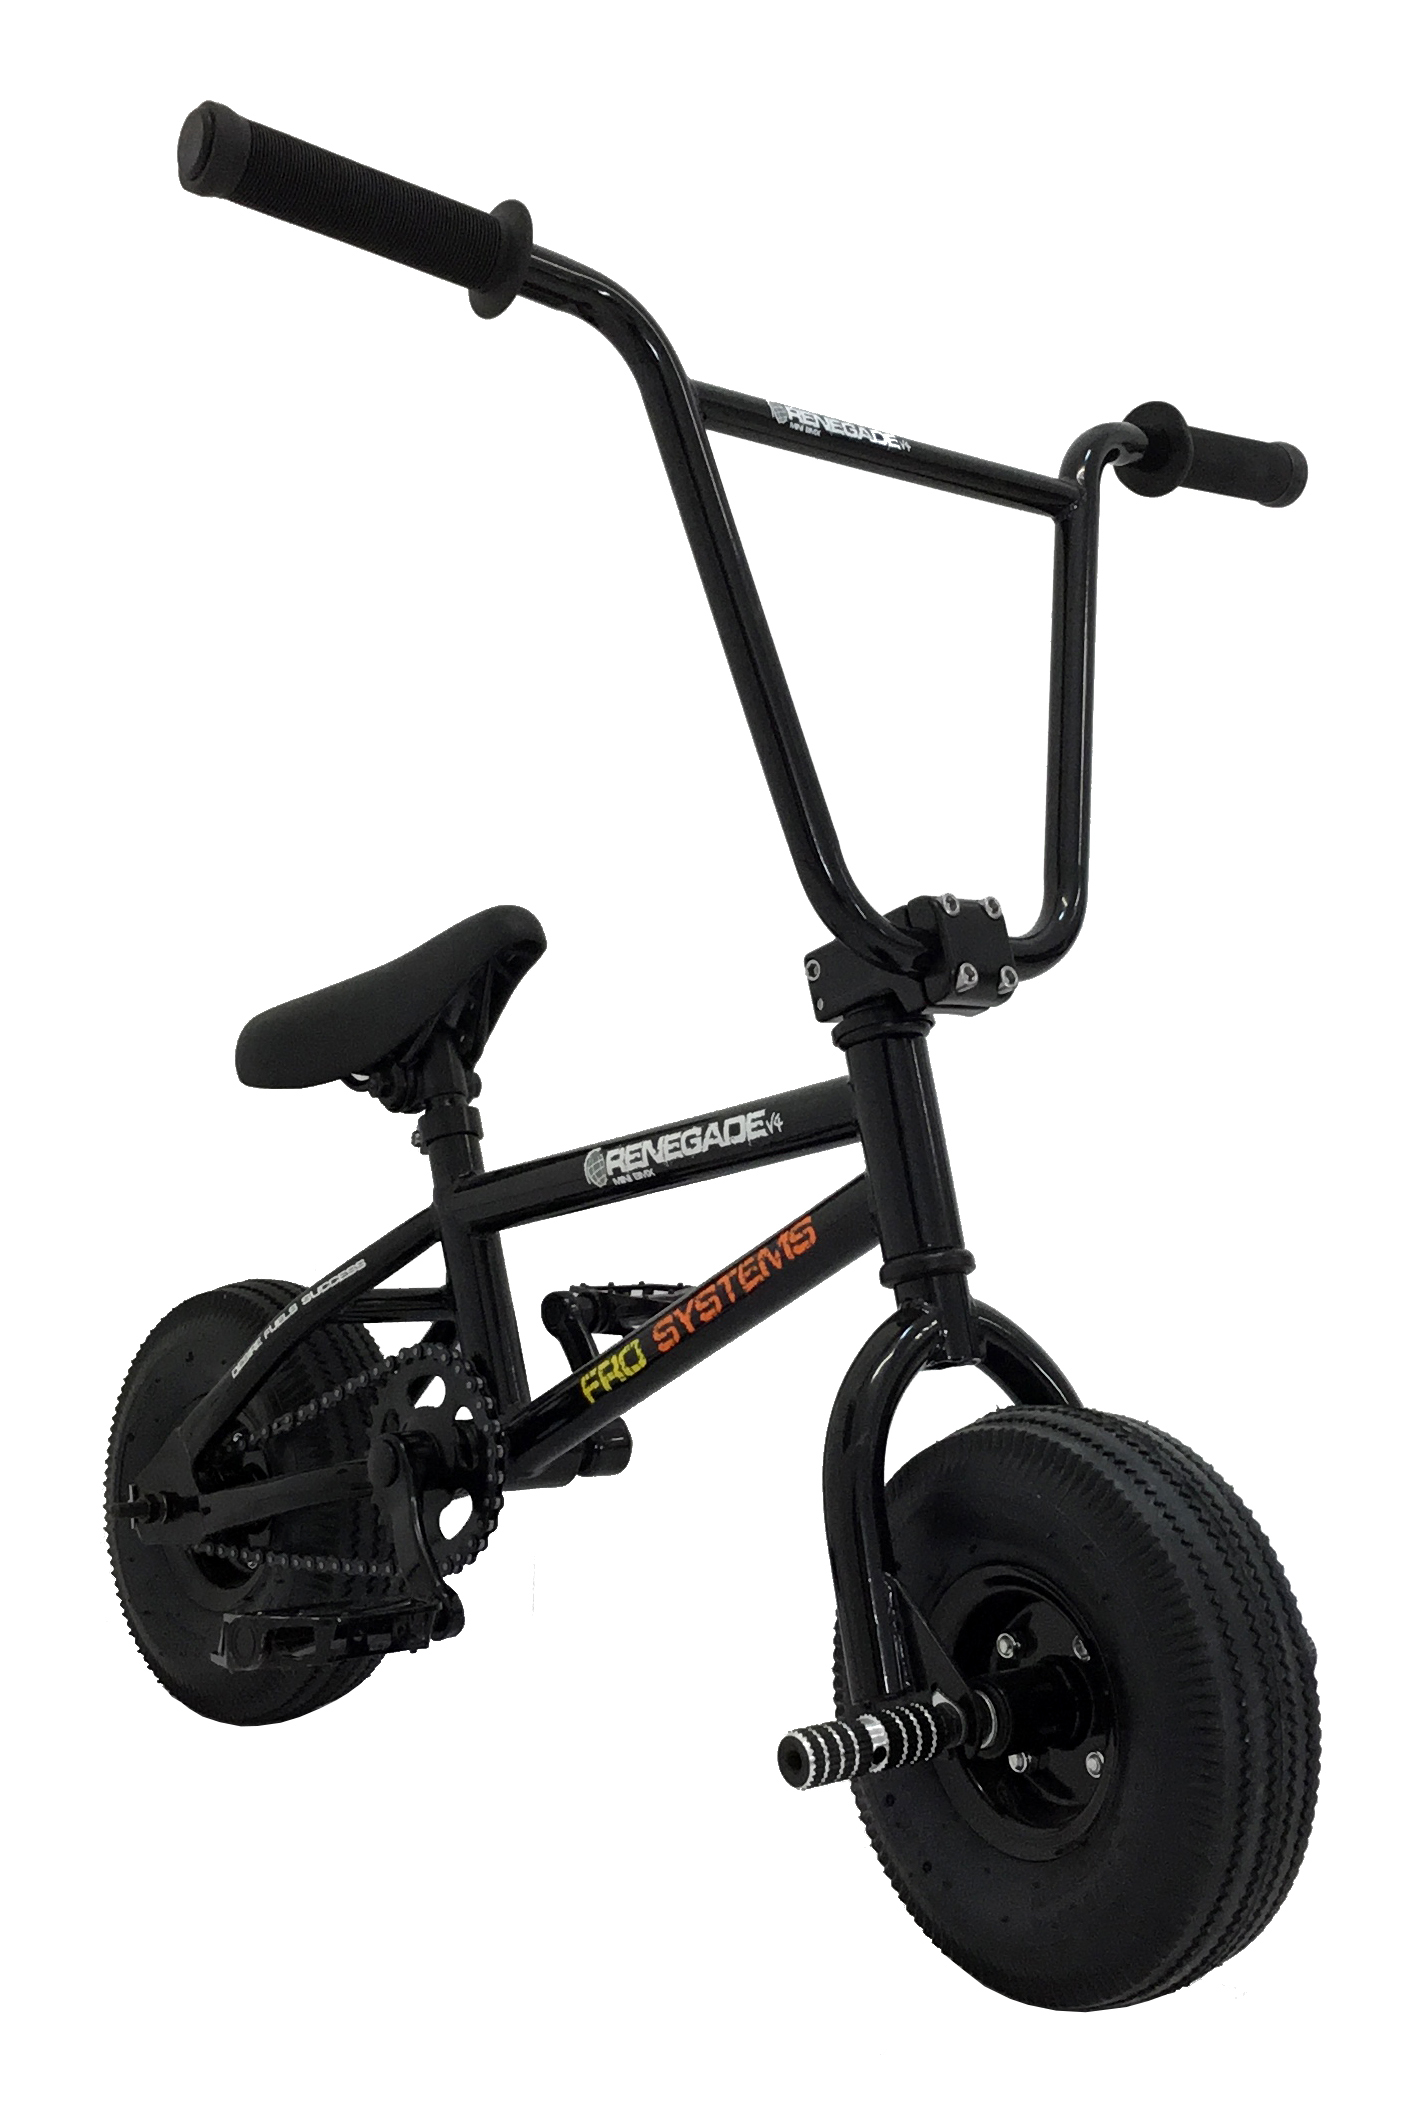 Black Renegade freestyle stunt mini bmx